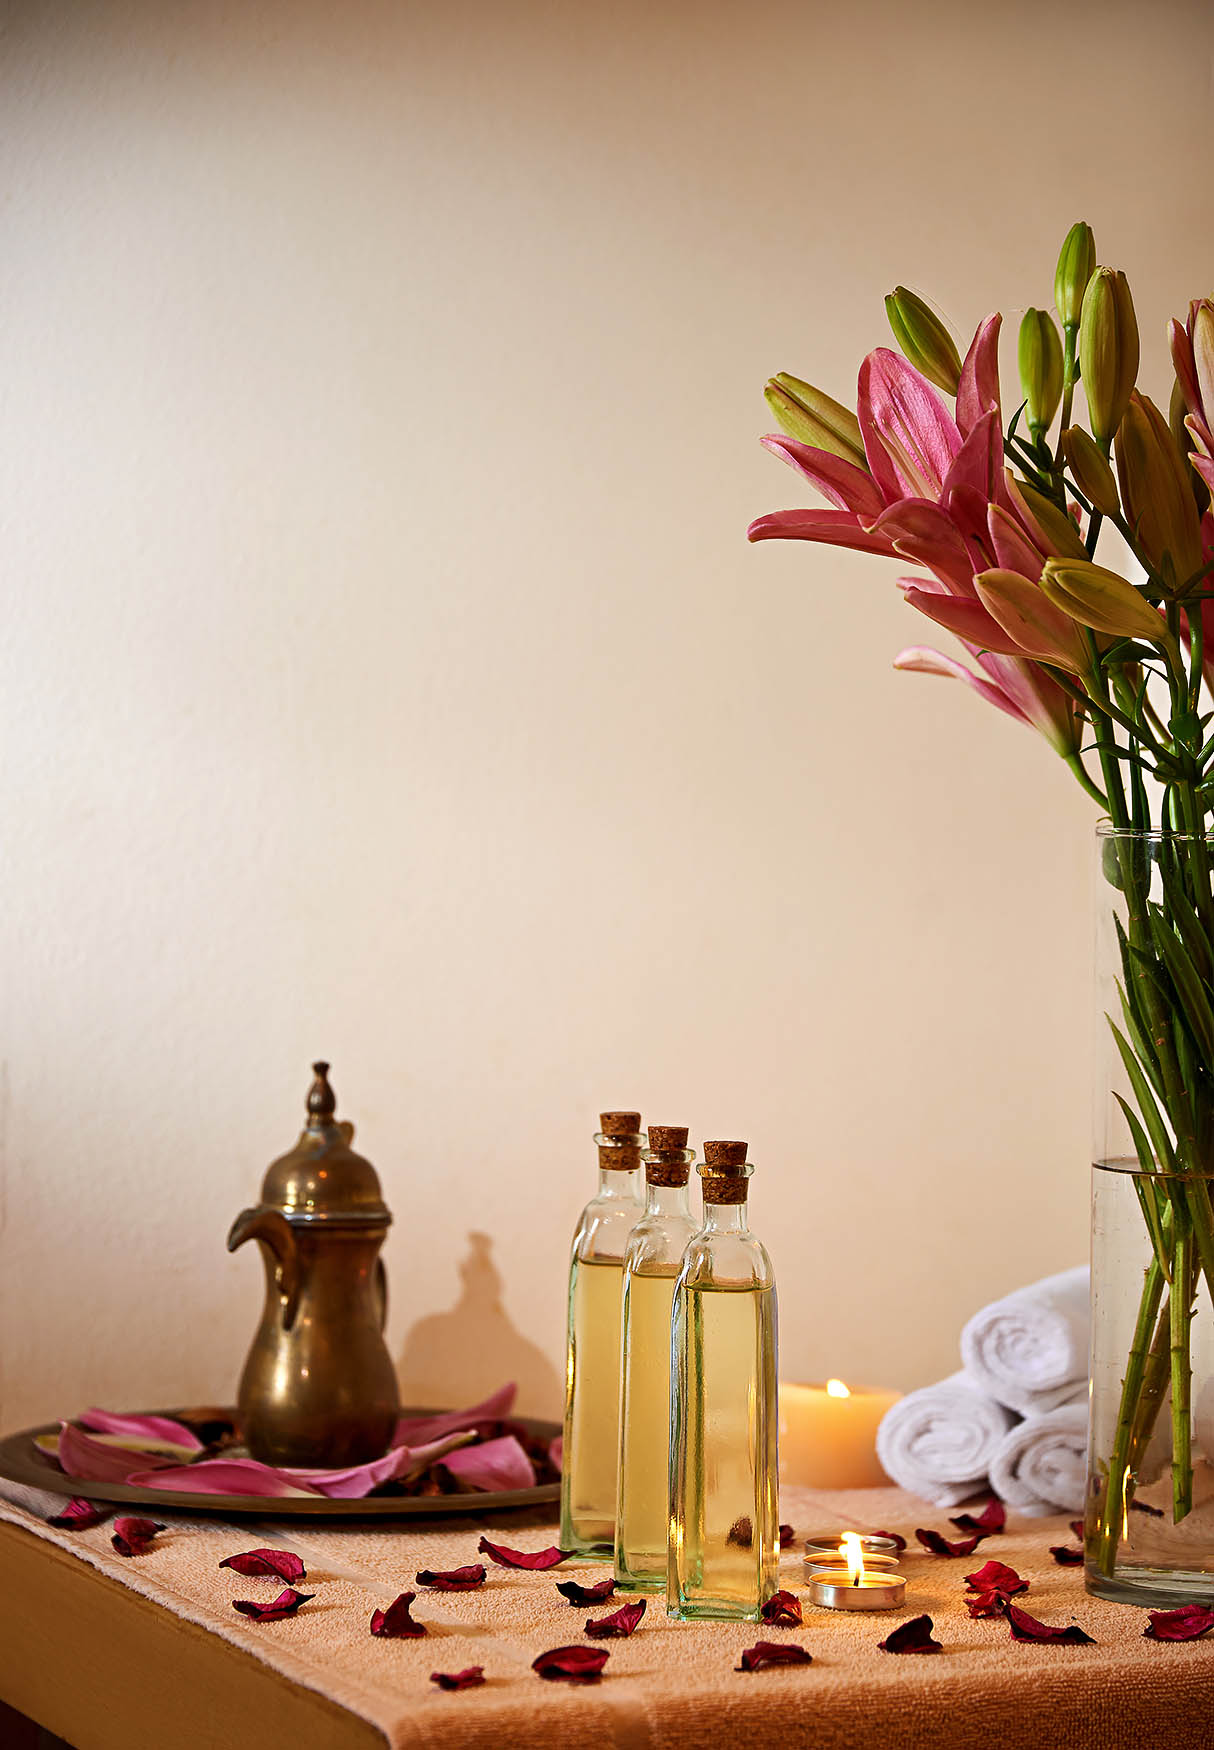 Massage Room Setup - Grand Nile Tower Hotel Cairo - Mohamed Abdel-Hady Photography